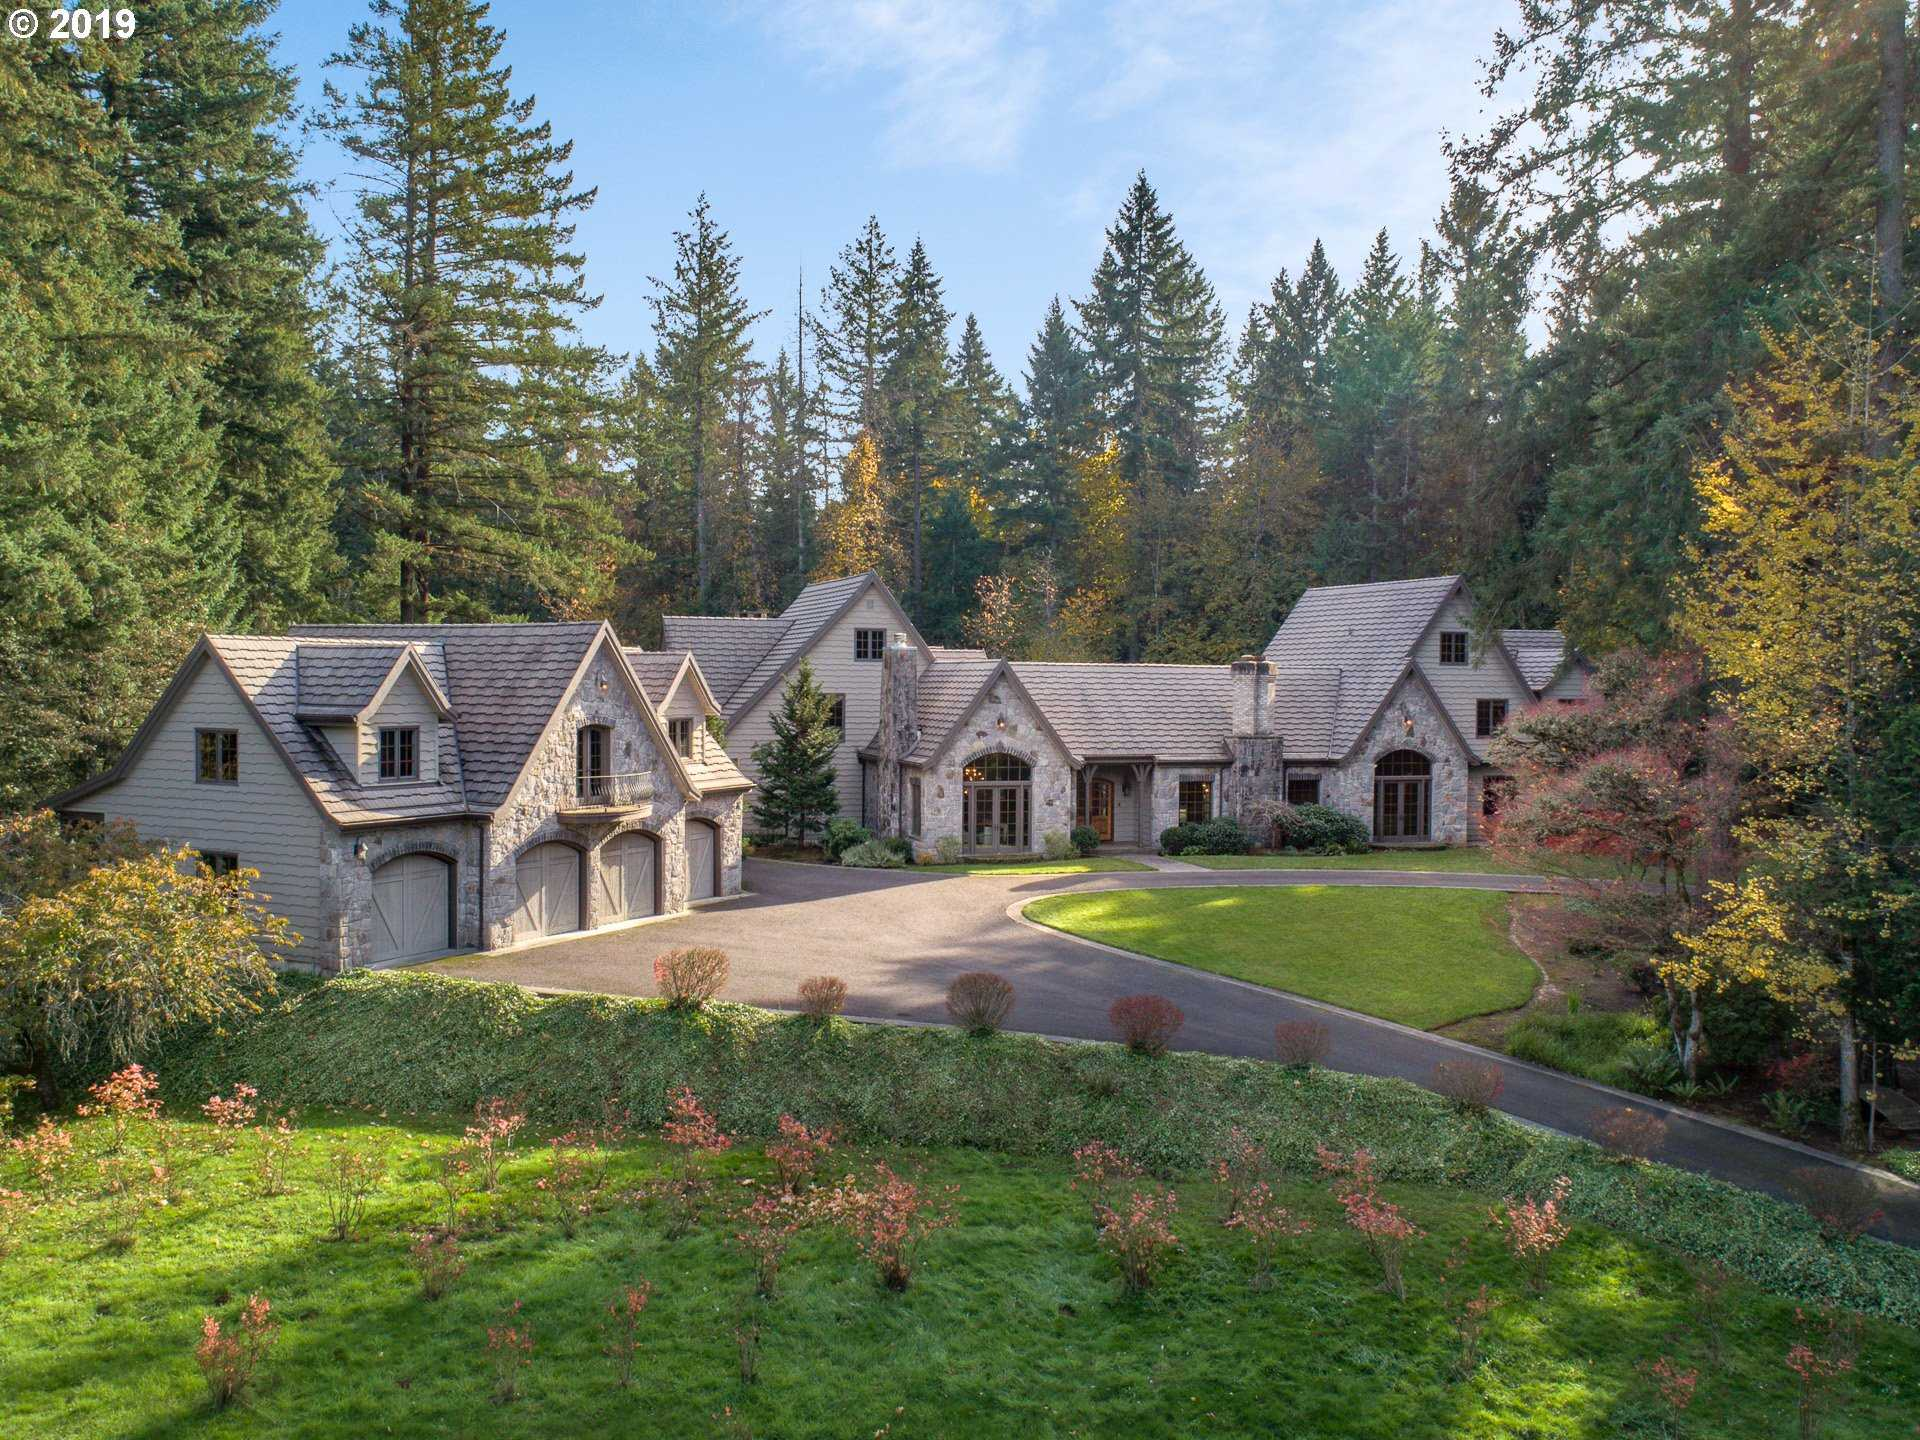 $2,495,000 - 5Br/6Ba -  for Sale in Prosperity Park, Tualatin